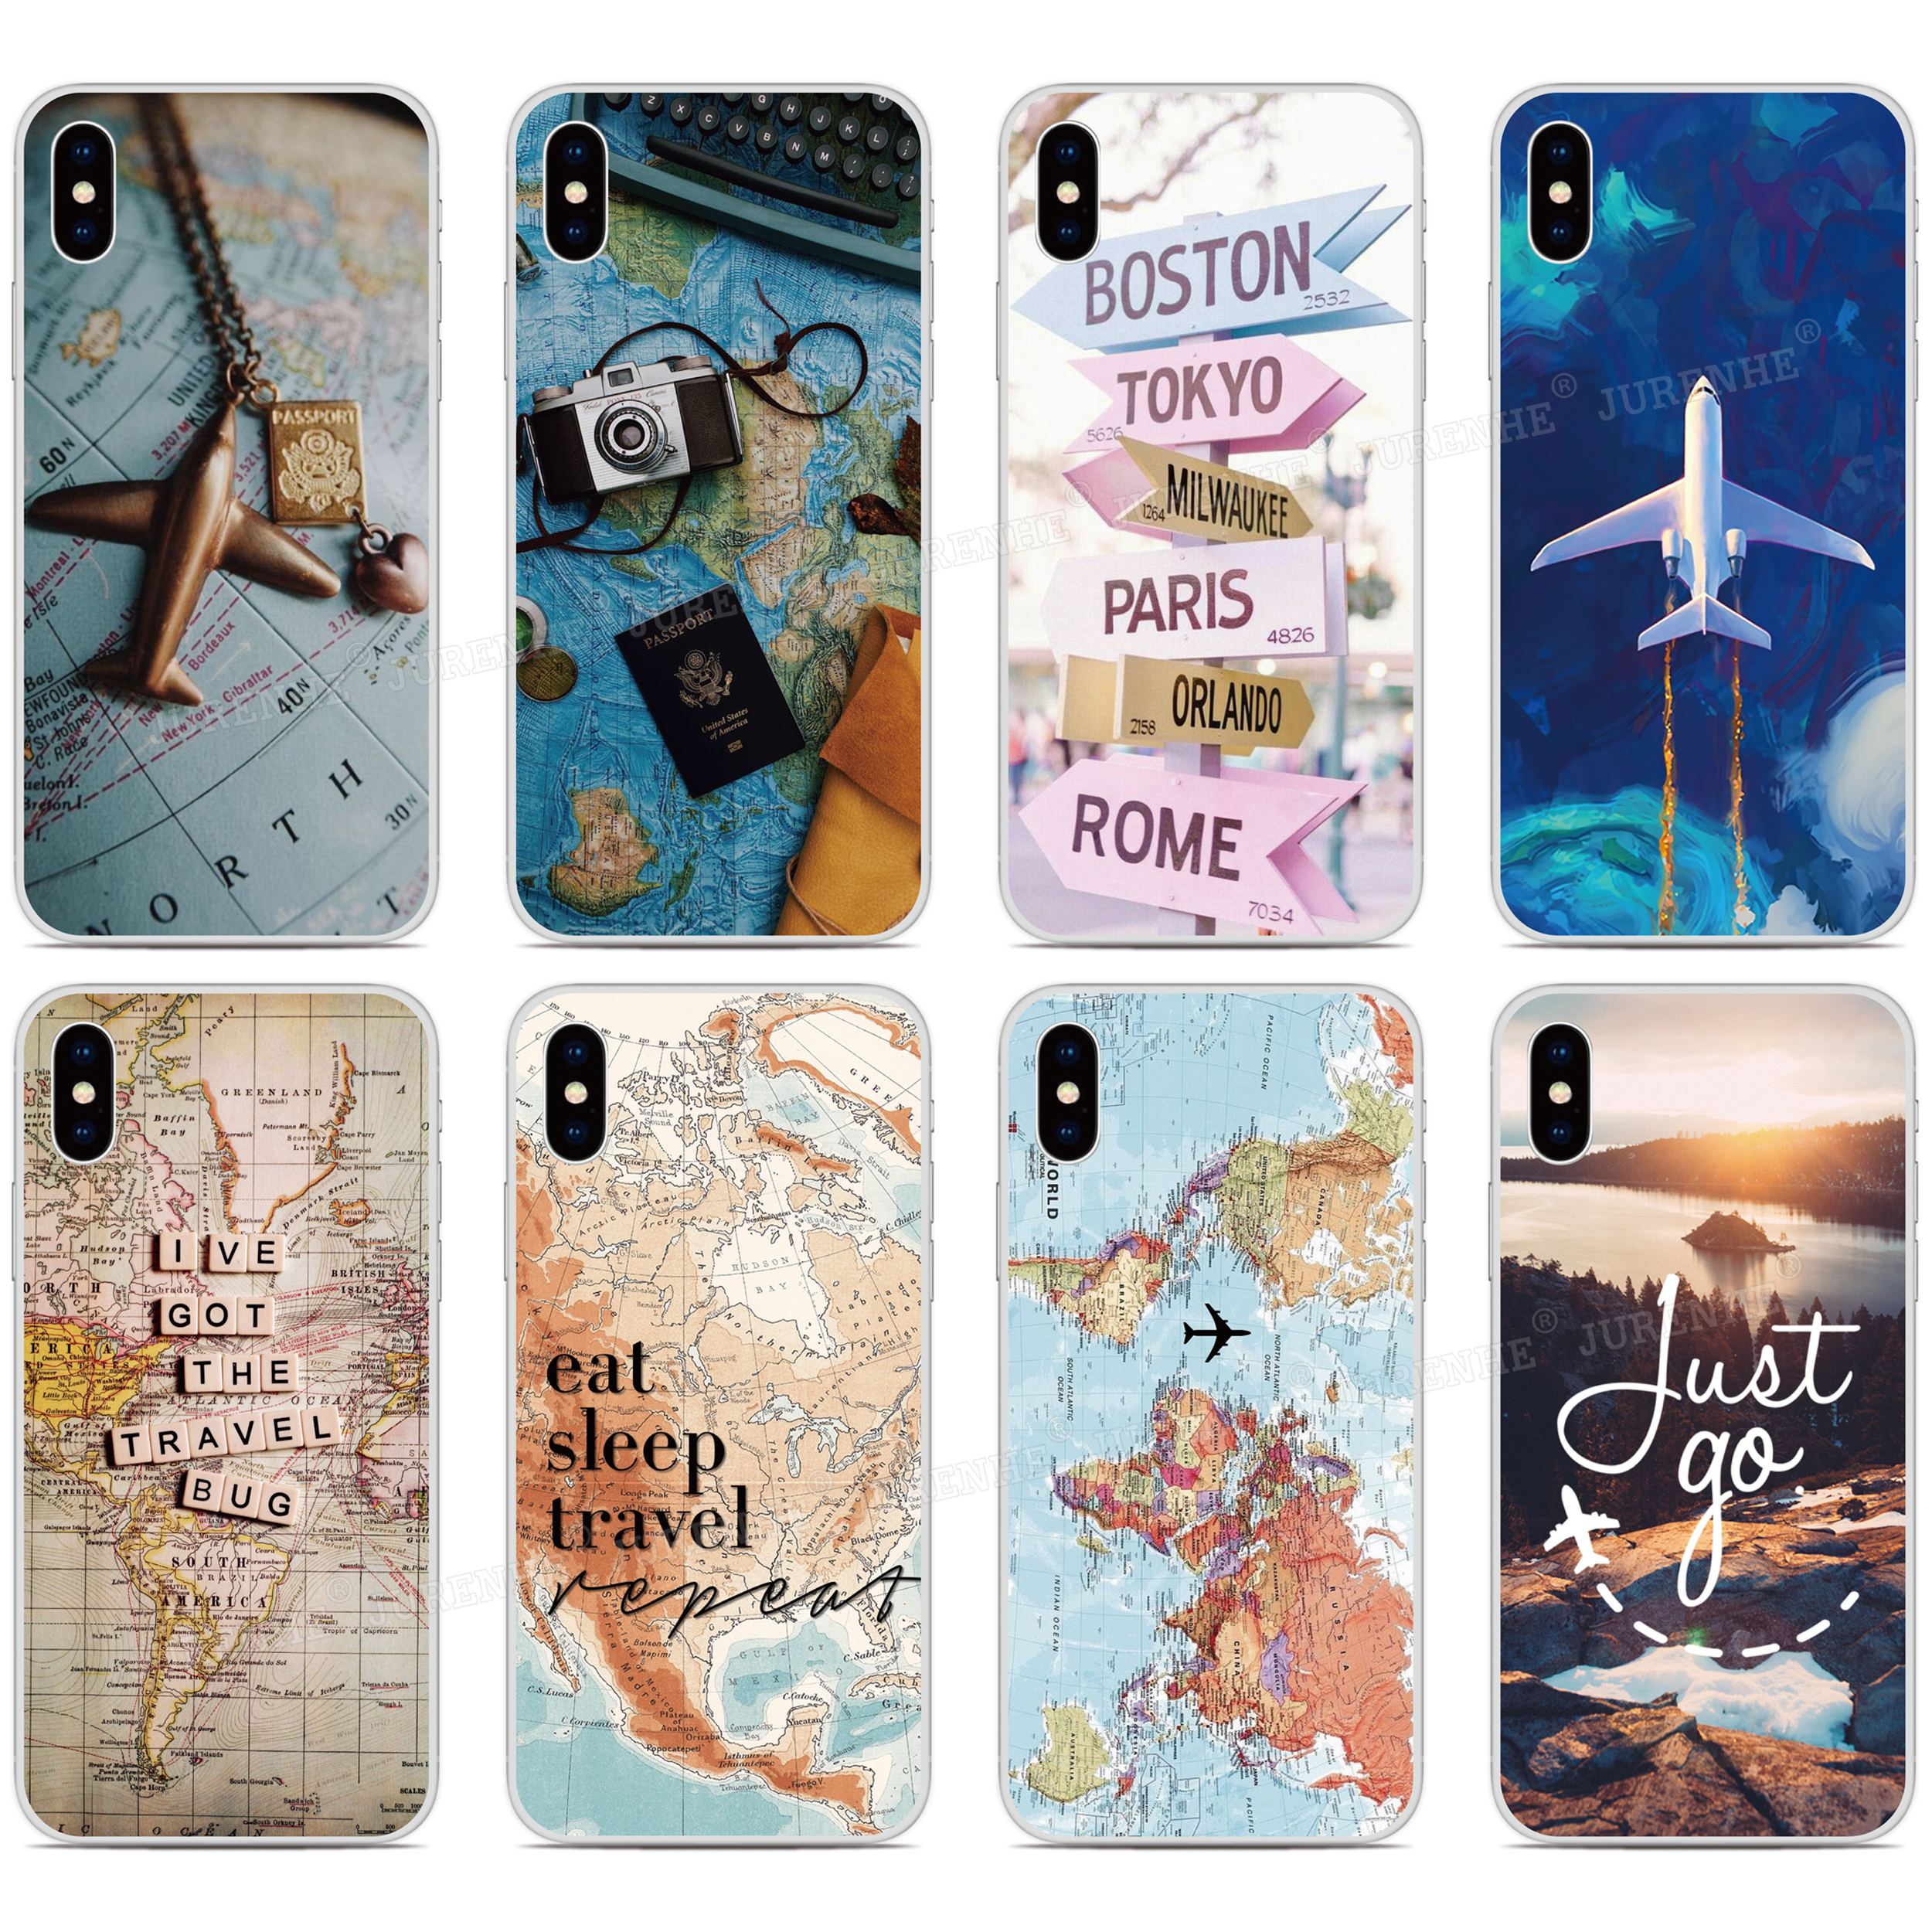 tpu Silicone World Map Travel Plane Phone <font><b>Case</b></font> For <font><b>OPPO</b></font> Find X2 Pro A9 A8 <font><b>A5</b></font> A31 <font><b>2020</b></font> A91 AX5S Realme 5 6 X50 Reno A 3 Pro Cover image